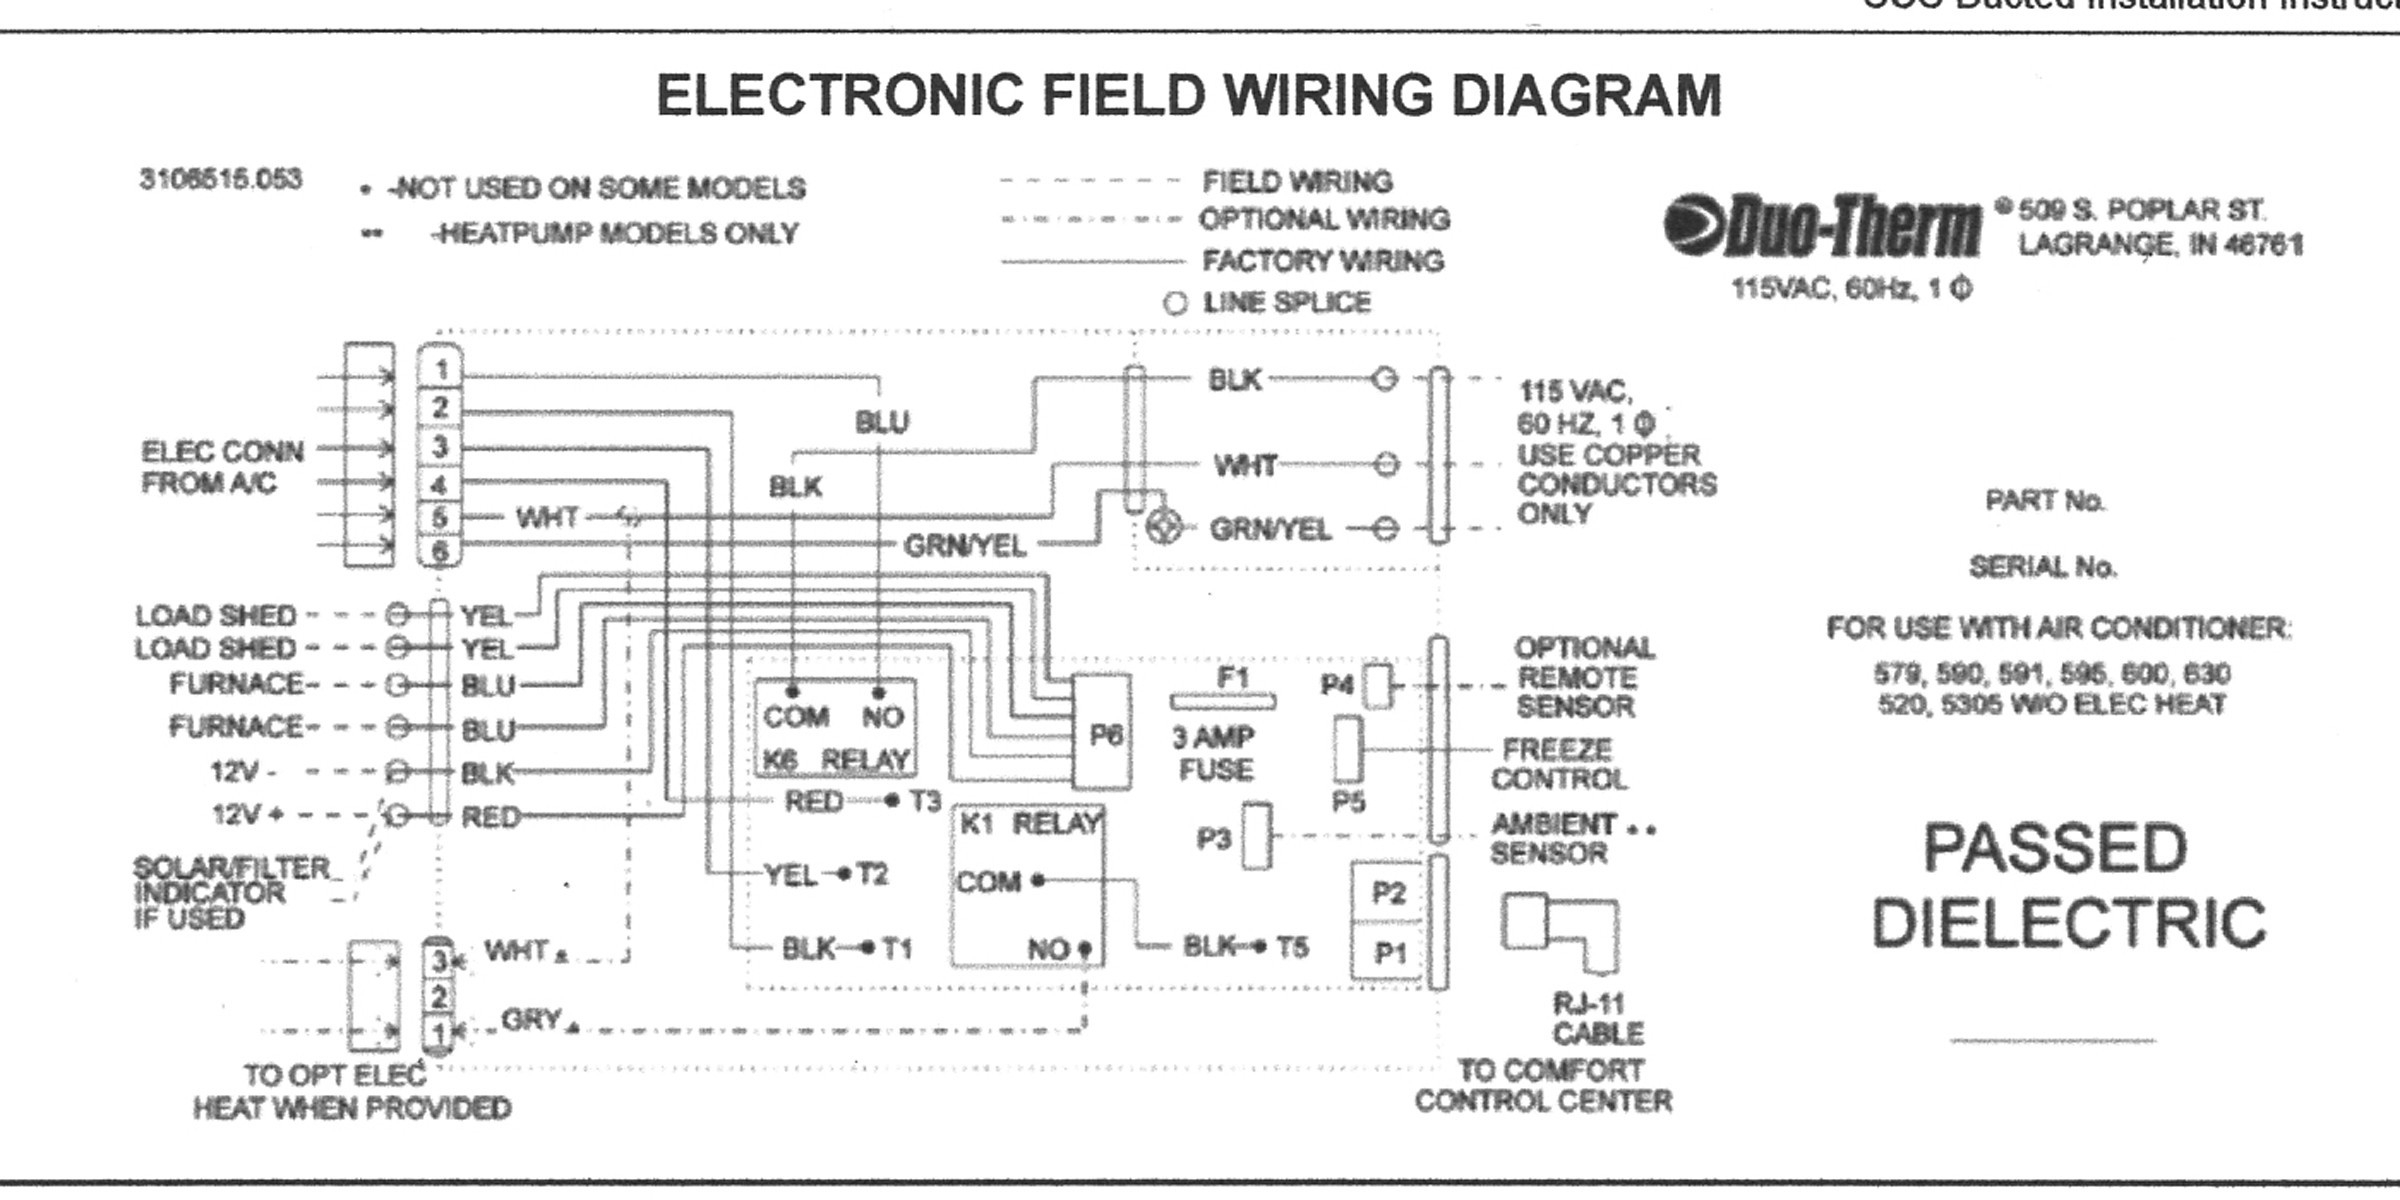 duo therm wiring diagram Collection-Wiring Diagram For Ac Unit Thermostat Fresh Wiring A Ac Thermostat Diagram New Duo Therm Thermostat Wiring 5-p